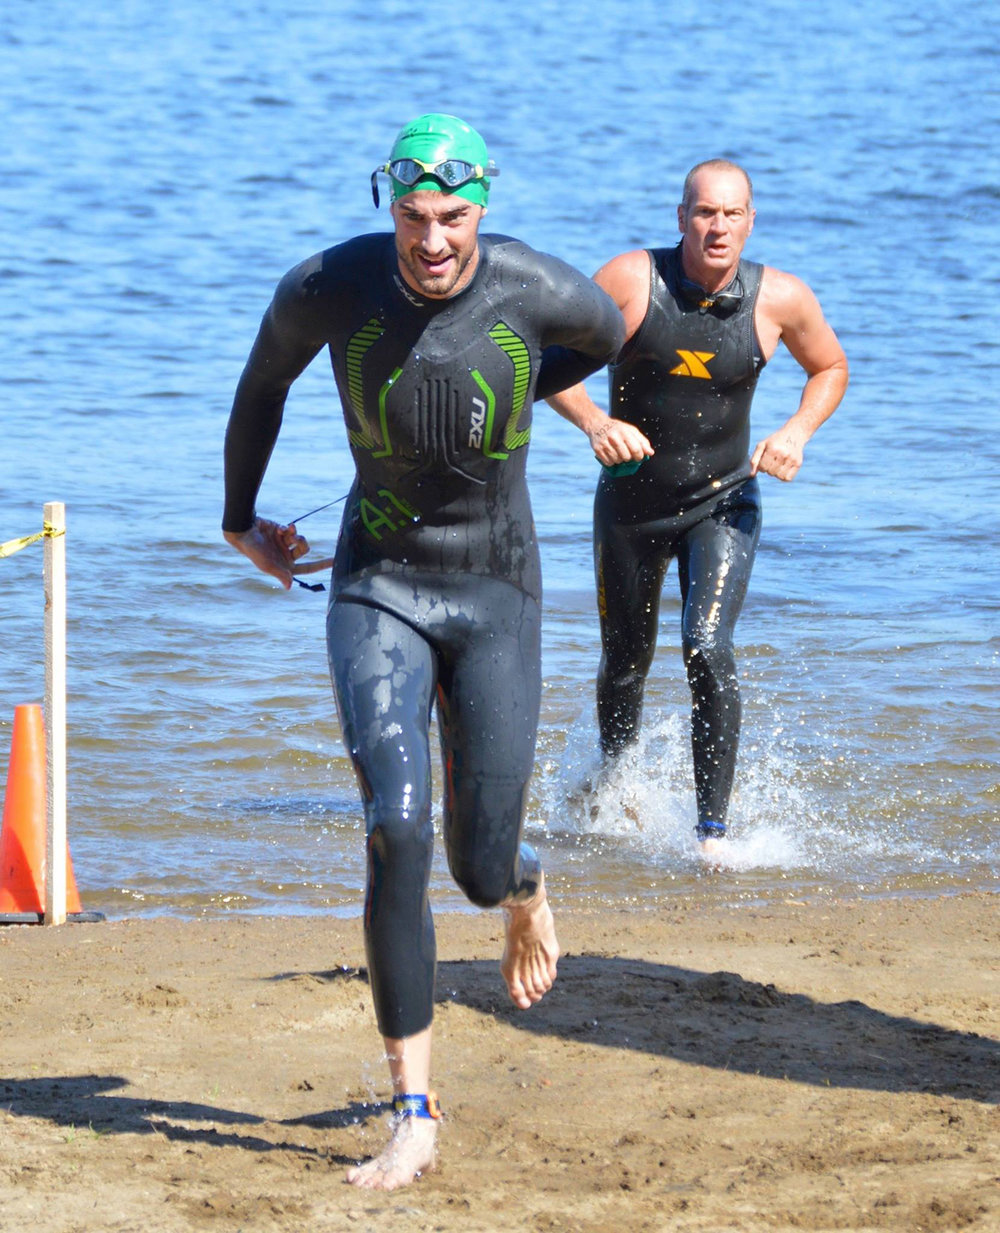 ▲ Daniel Halbig of Ballston Lake at the 2016 Great Sacandaga Challenge Triathlon.  Sarah Dzikowicz